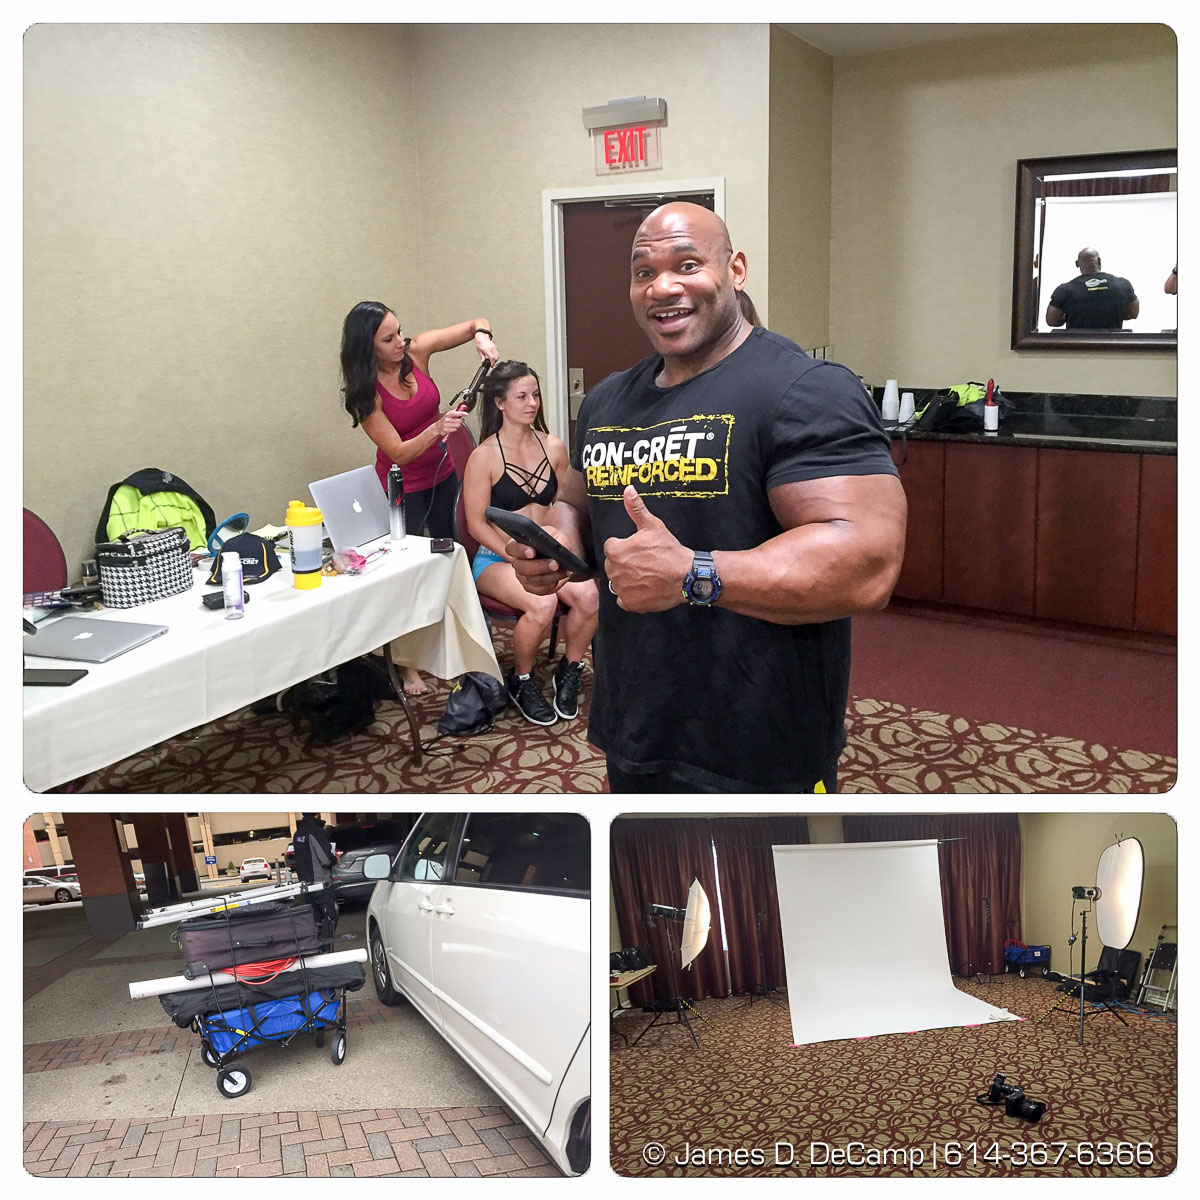 Behind the scenes of a shoot with Promera Sports photographed Thursday March 3, 2016 at the Arnold Classic Sports Festival. Bodybuilders Fred 'Biggie Smalls & Tiffany Cogan. iPhone photos, please excuse the quality :-) (© James D. DeCamp | http://www.JamesDeCamp.com | 614-367-6366) #JDeCampPhoto #promera #ArnoldSportsFestival #concret #FredBiggieSmalls #ArnoldClassic #Schwarzenegger #tiffanycogan